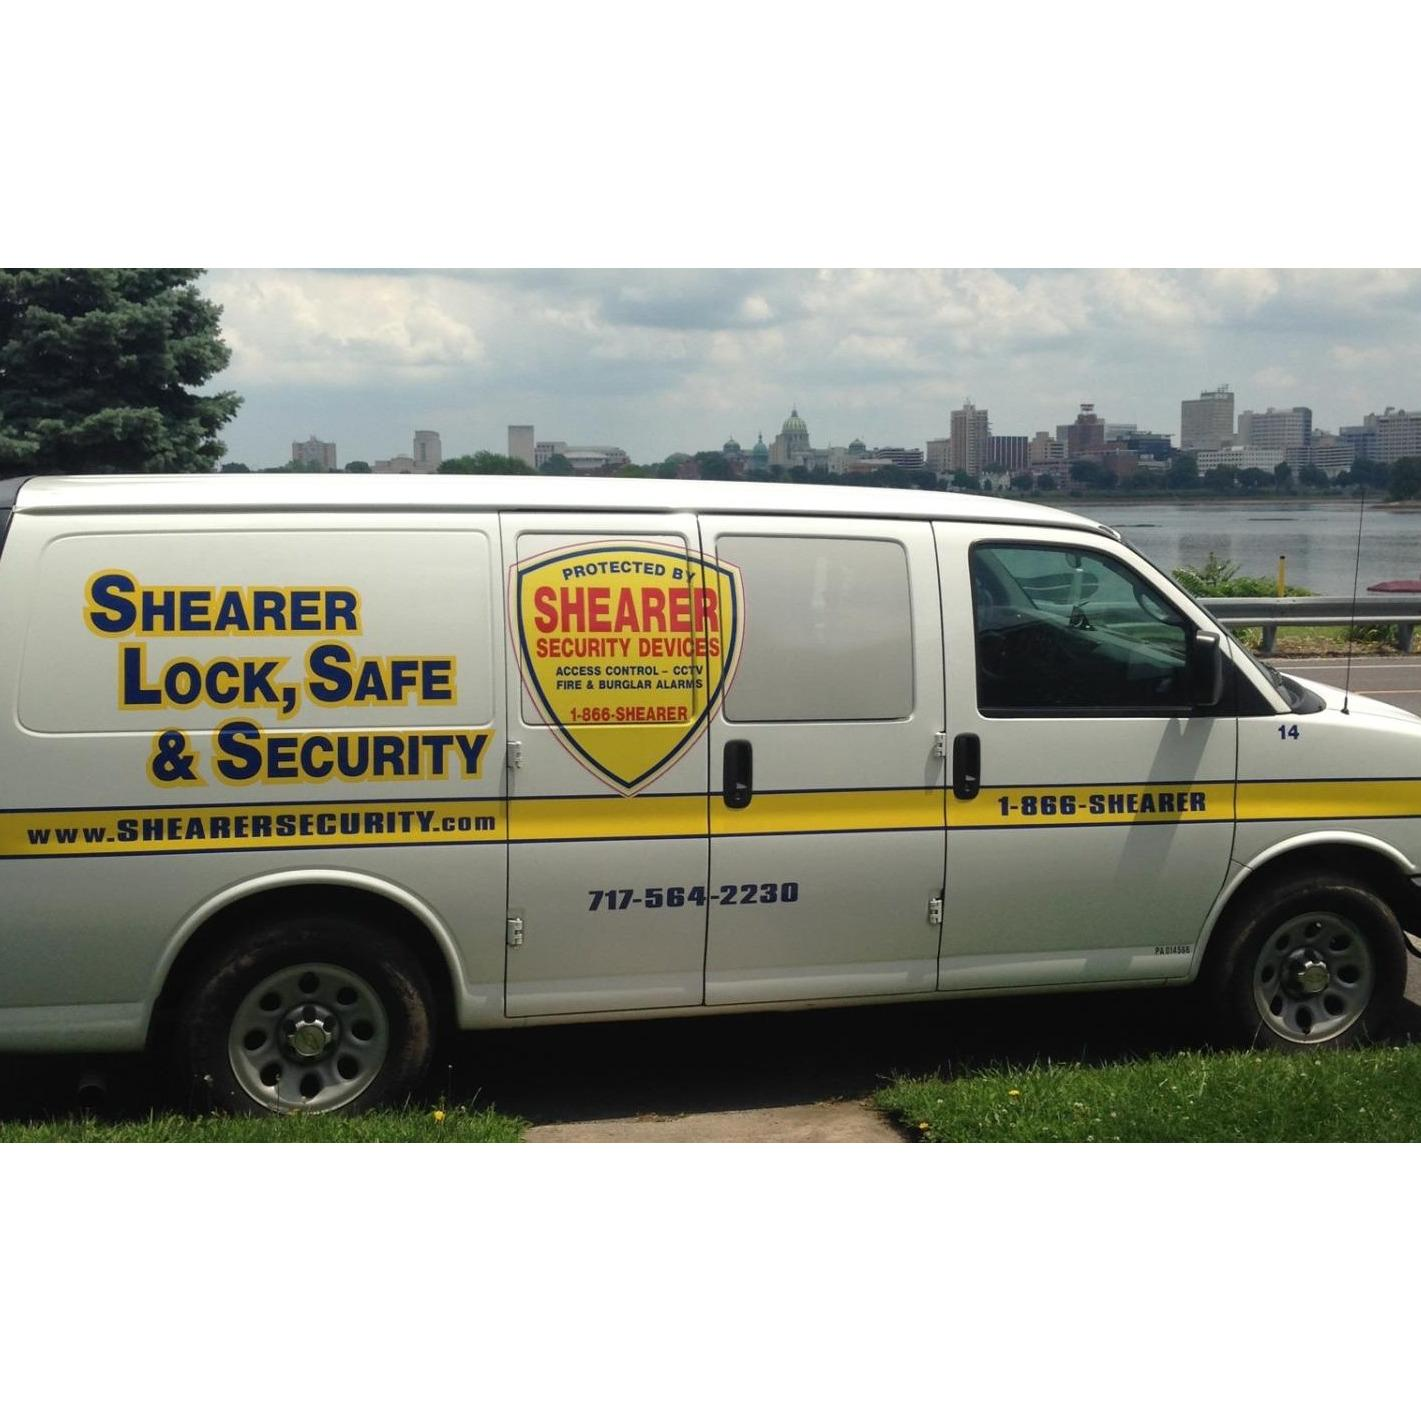 Shearer Lock Safe & Security - Harrisburg, PA - Security Services